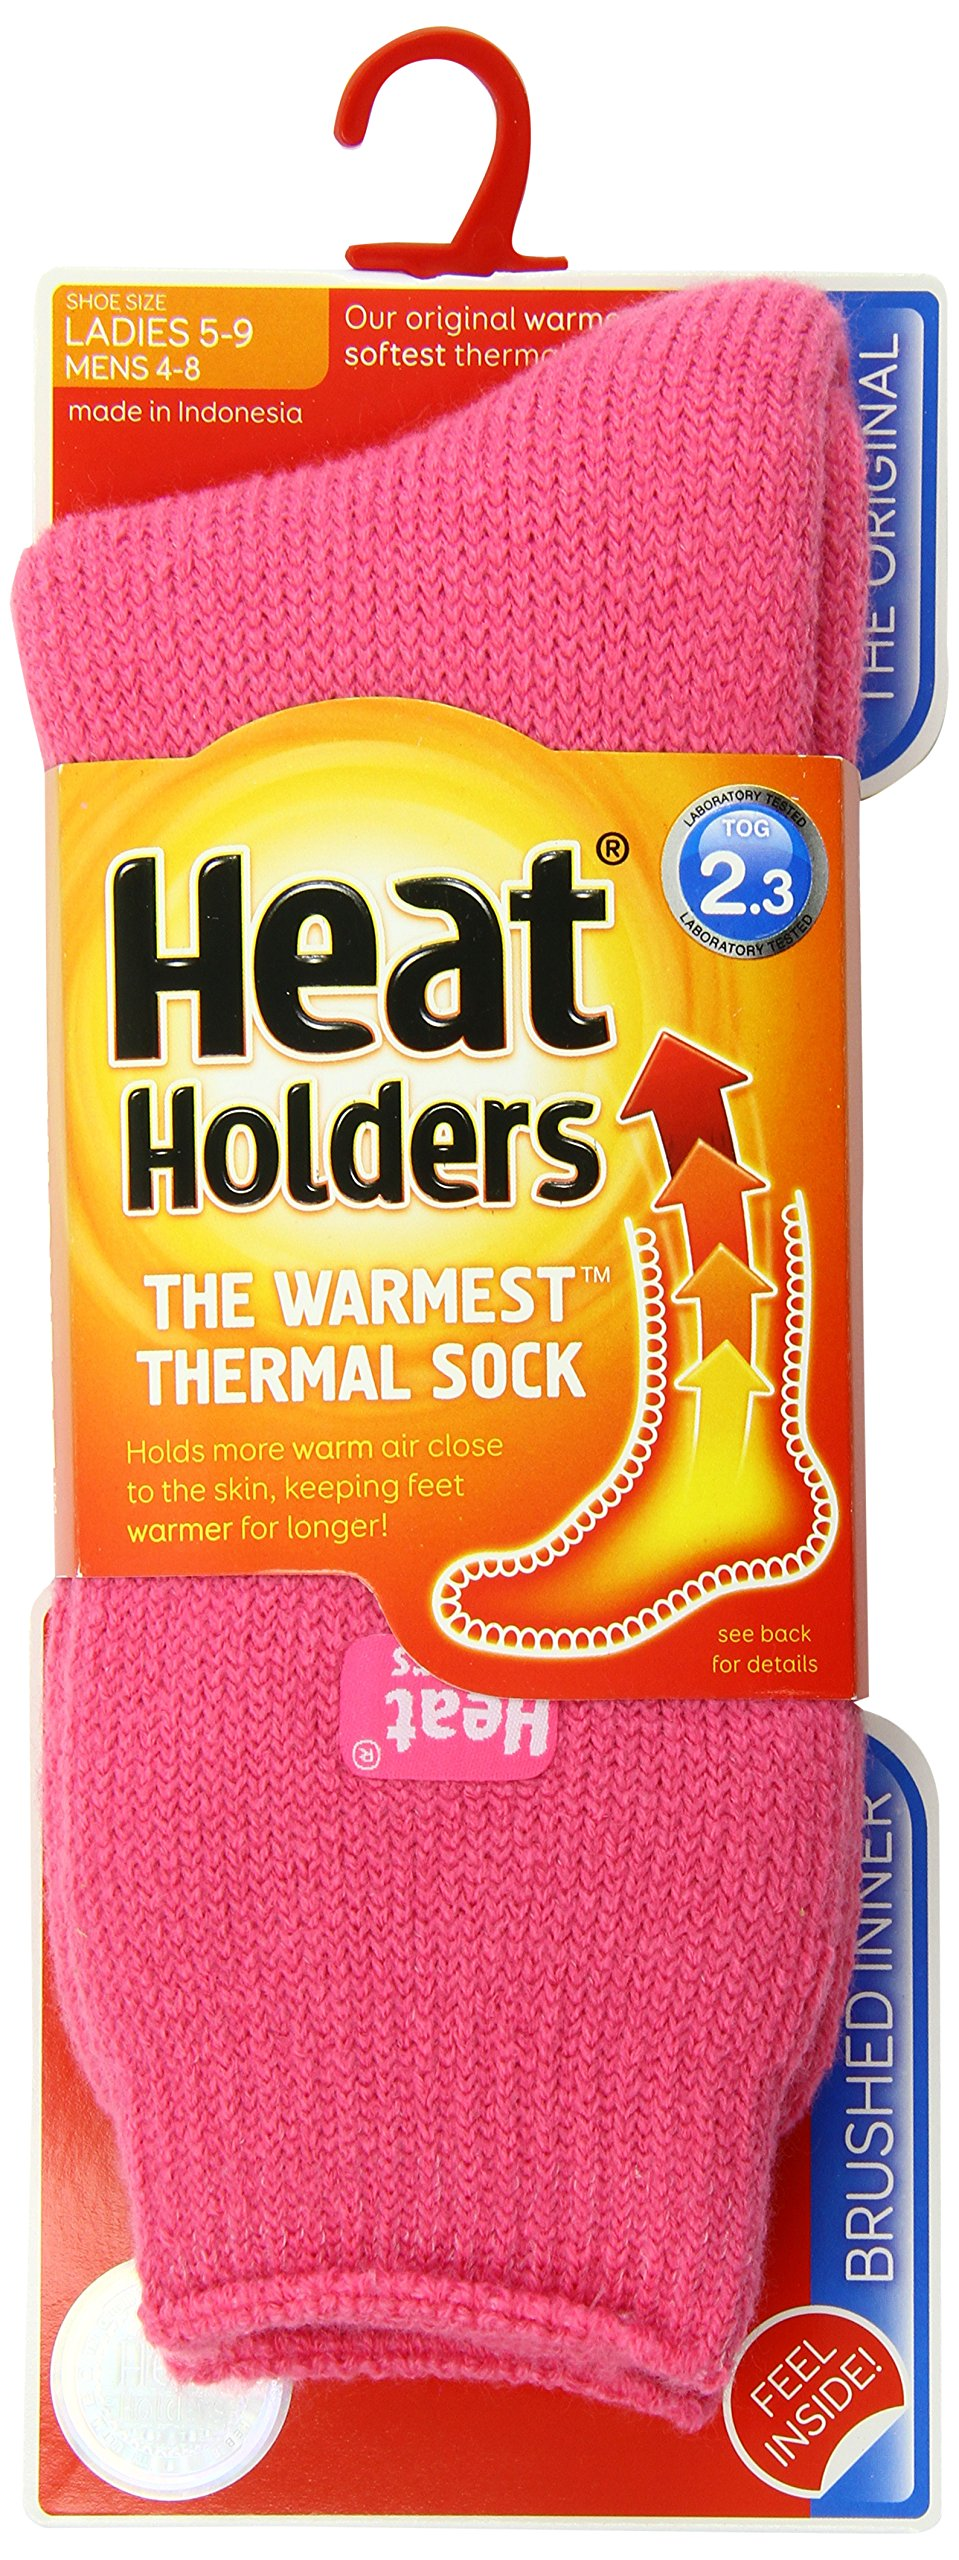 Heat Holders Thermal Socks, Women's Original, US Shoe Size 5-9